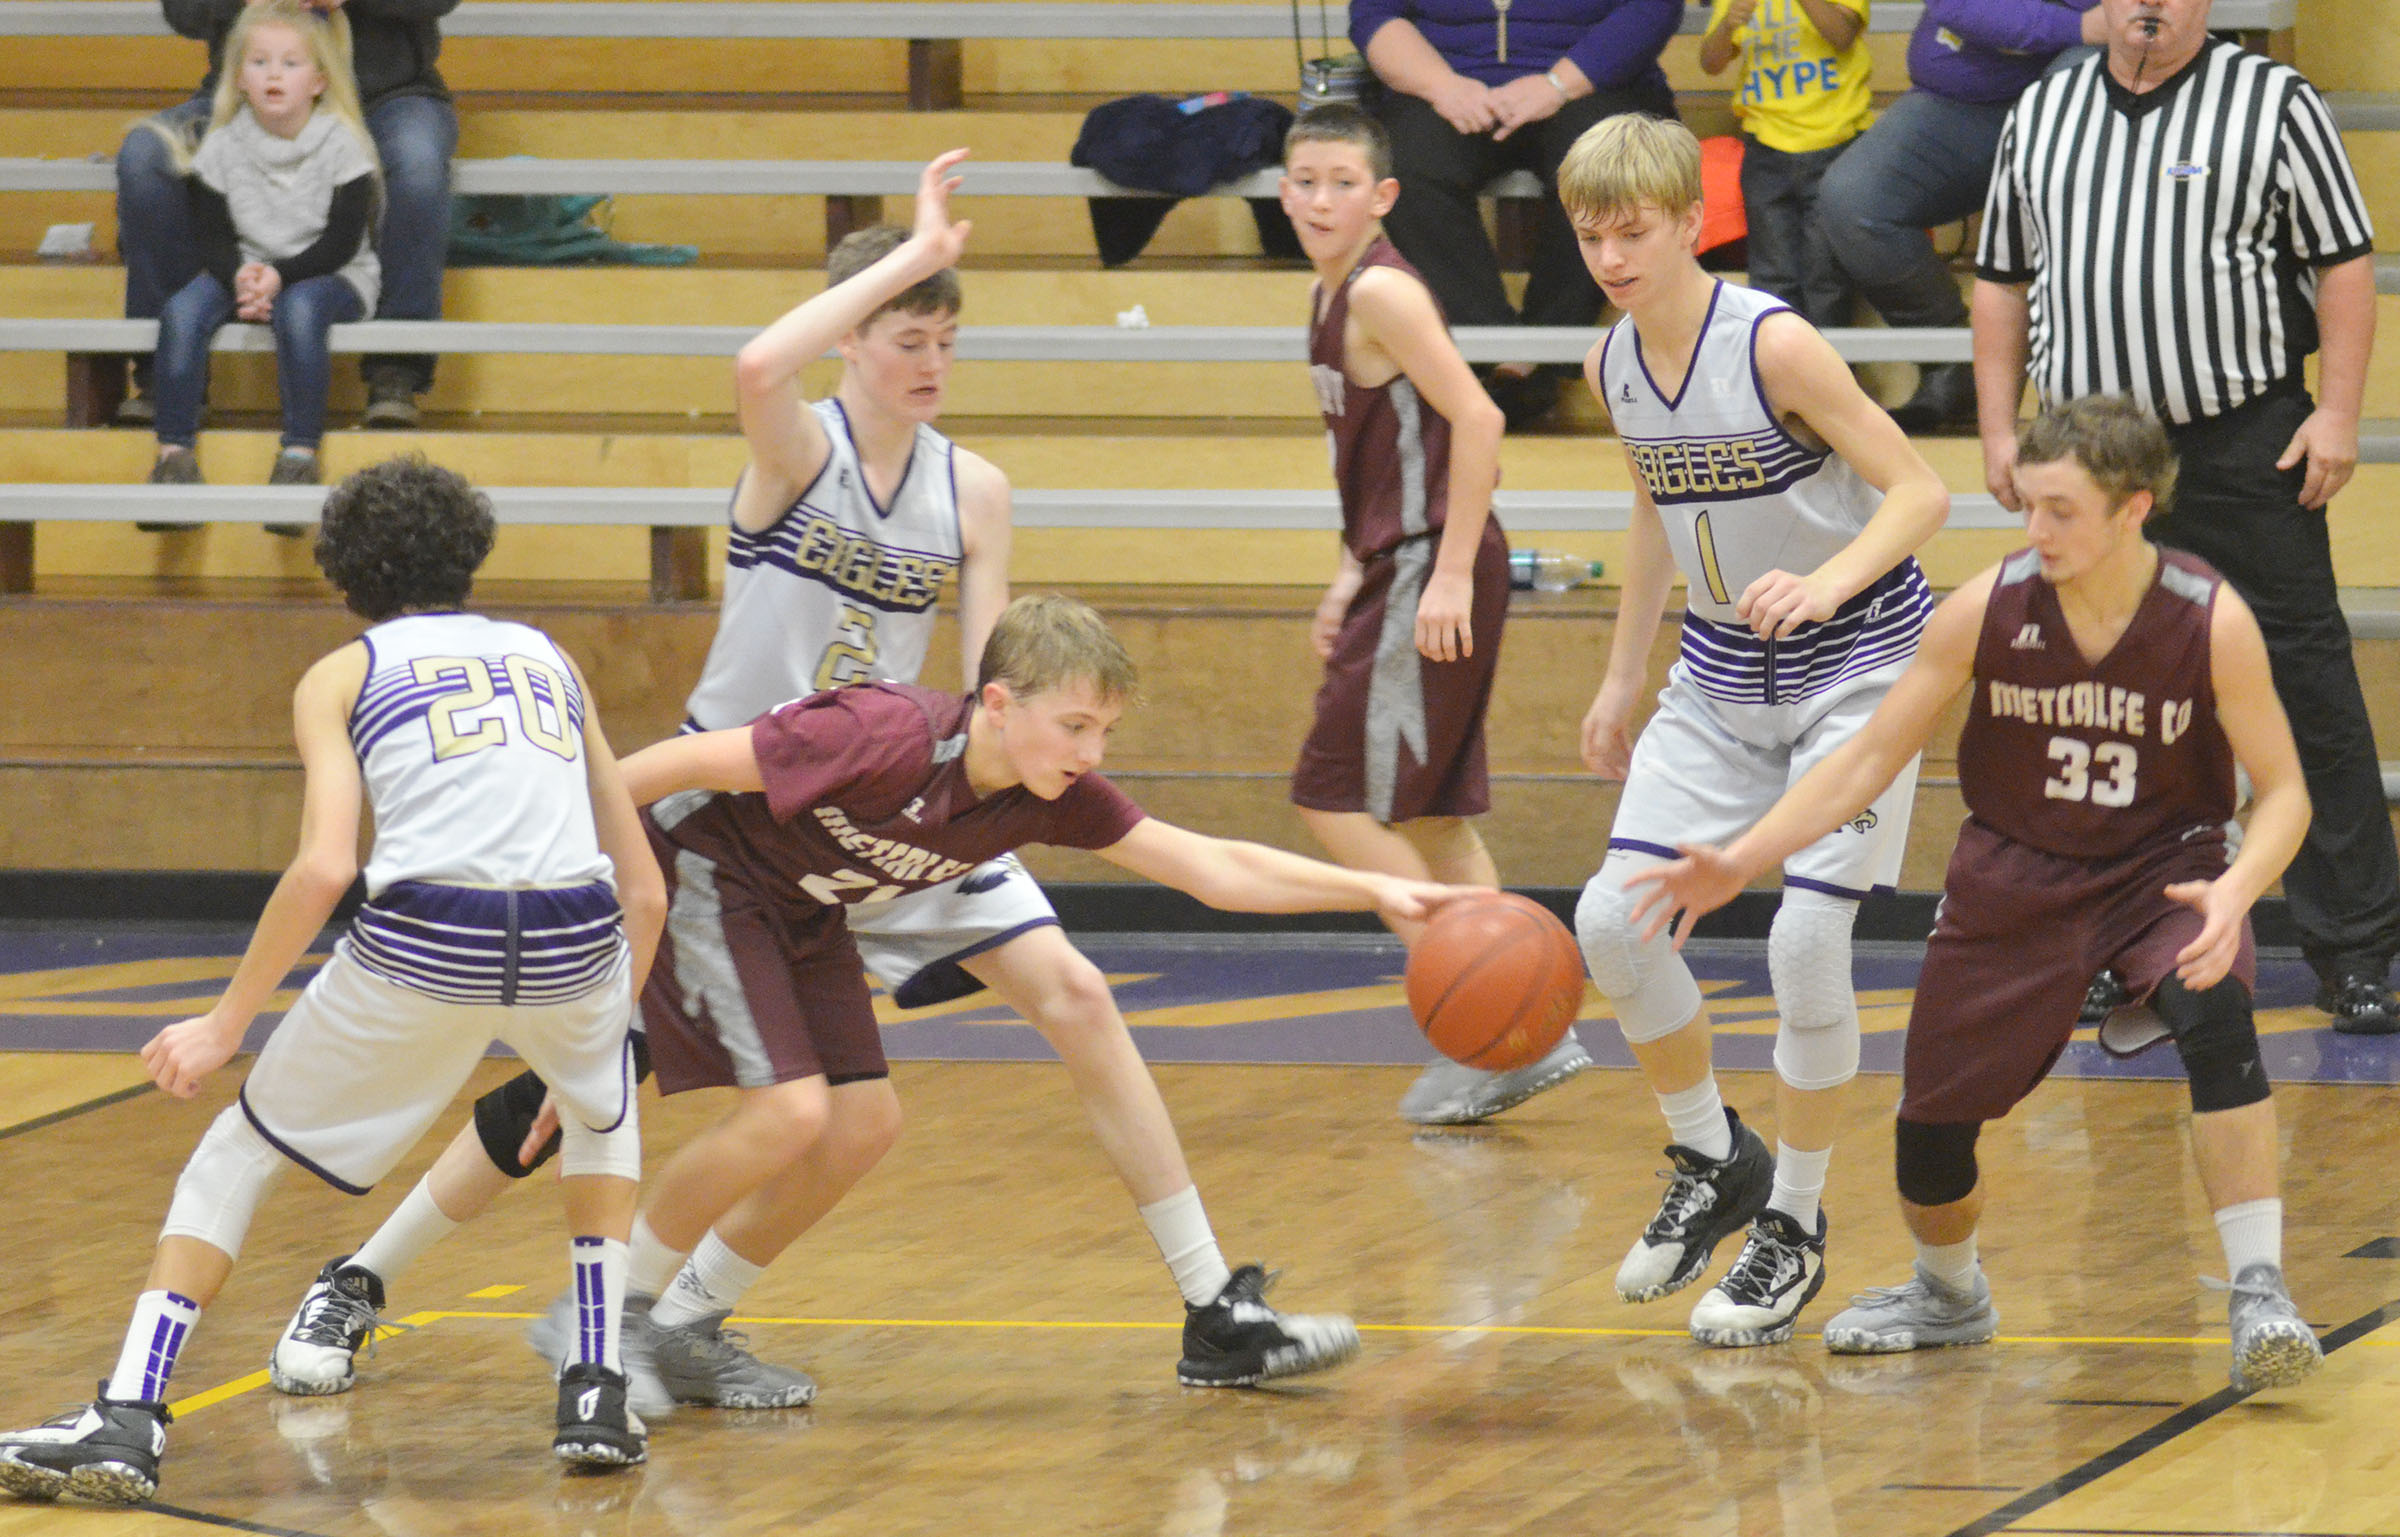 CMS eighth-graders, from left, Kameron Smith, Tristin Faulkner and Arren Hash play defense.